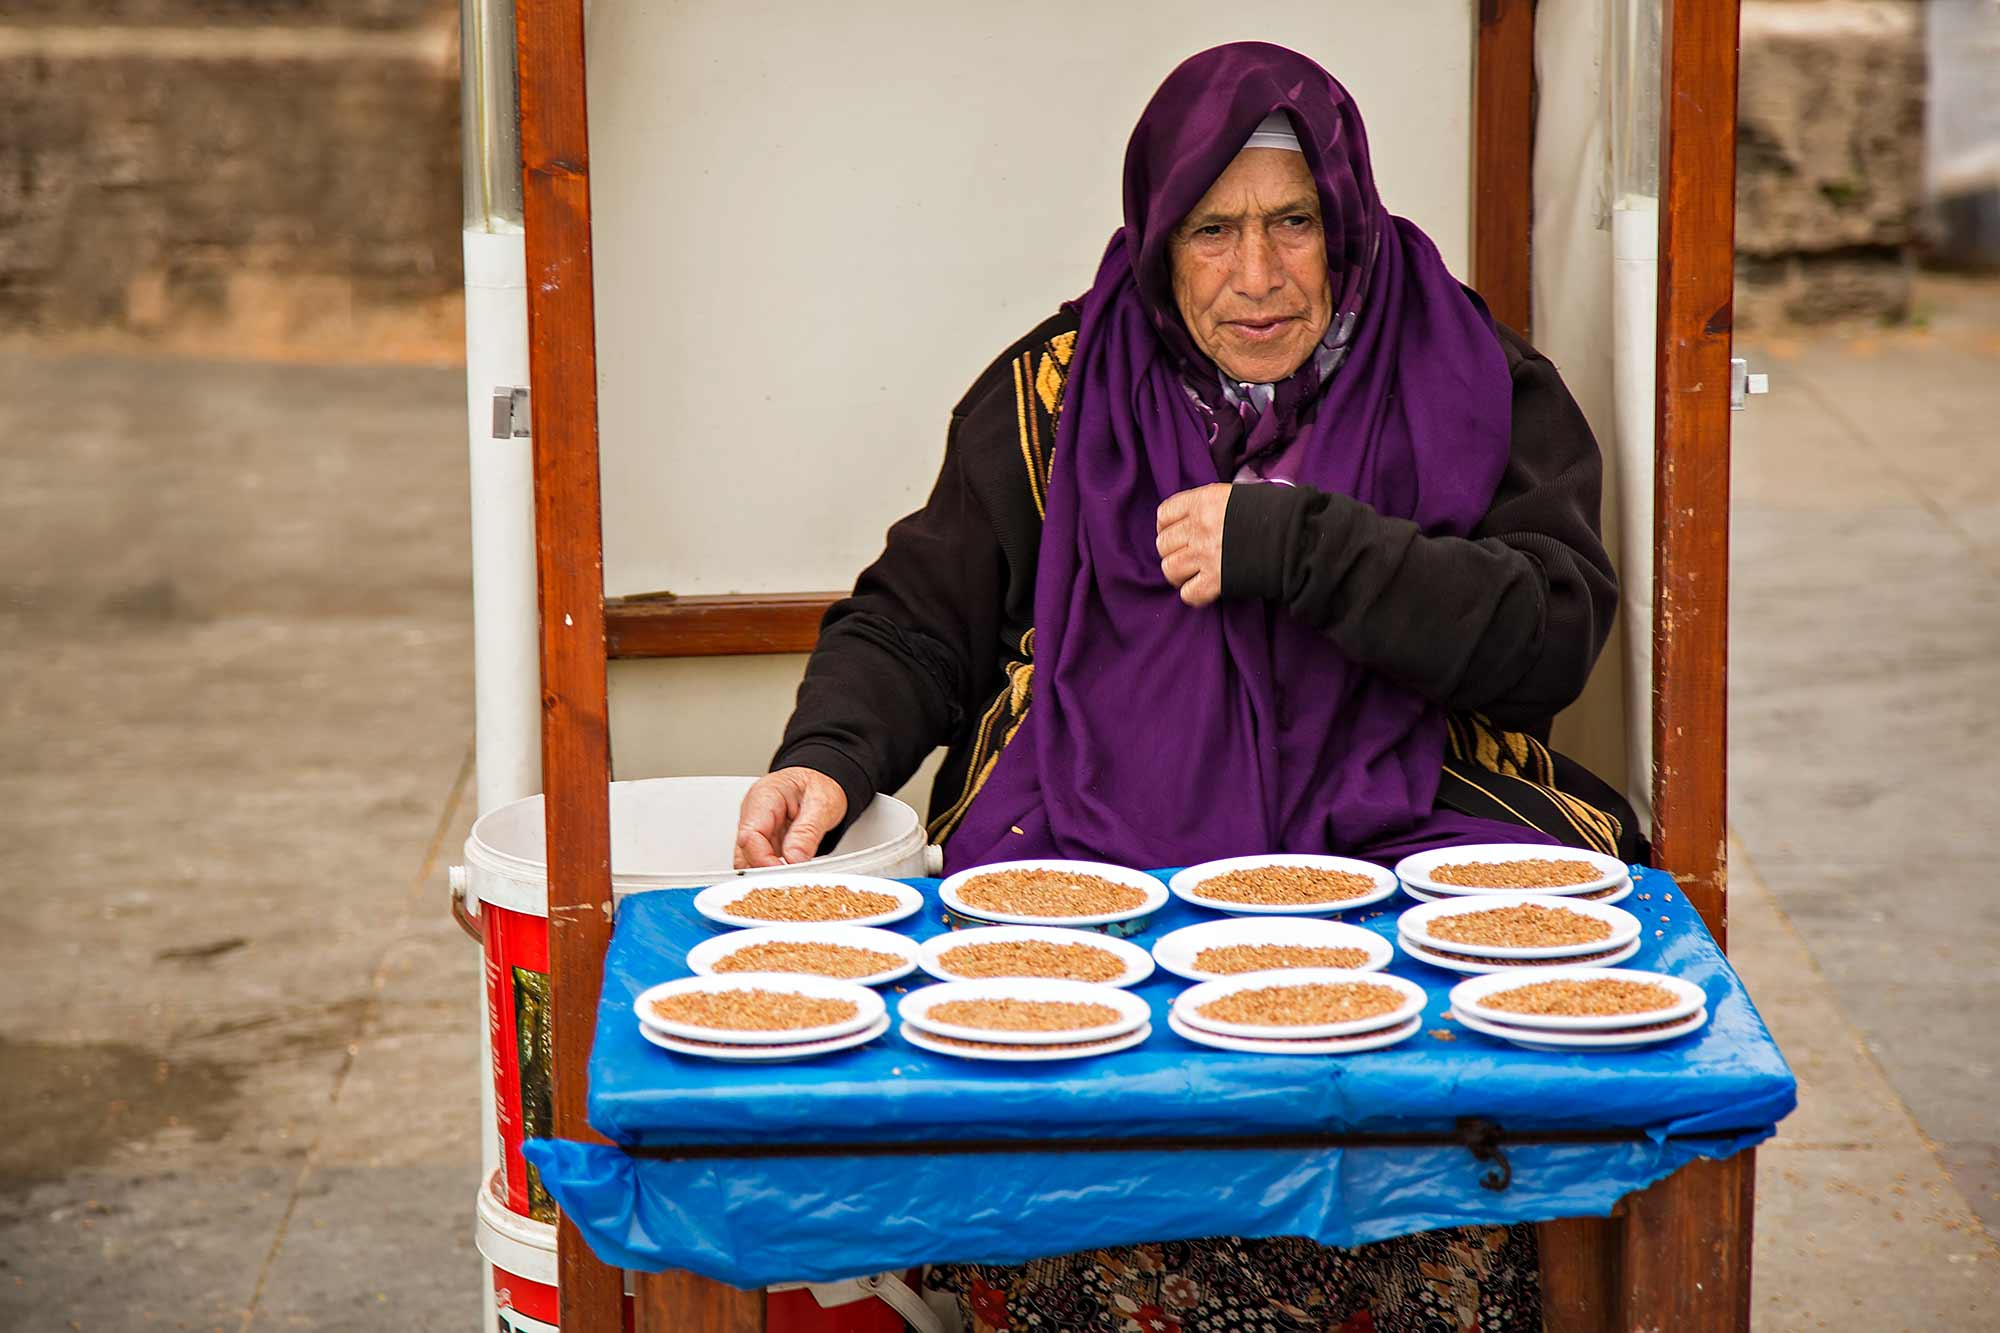 A woman selling bird food in front of the New Mosque in Istanbul, Turkey. © Ulli Maier & Nisa Maier